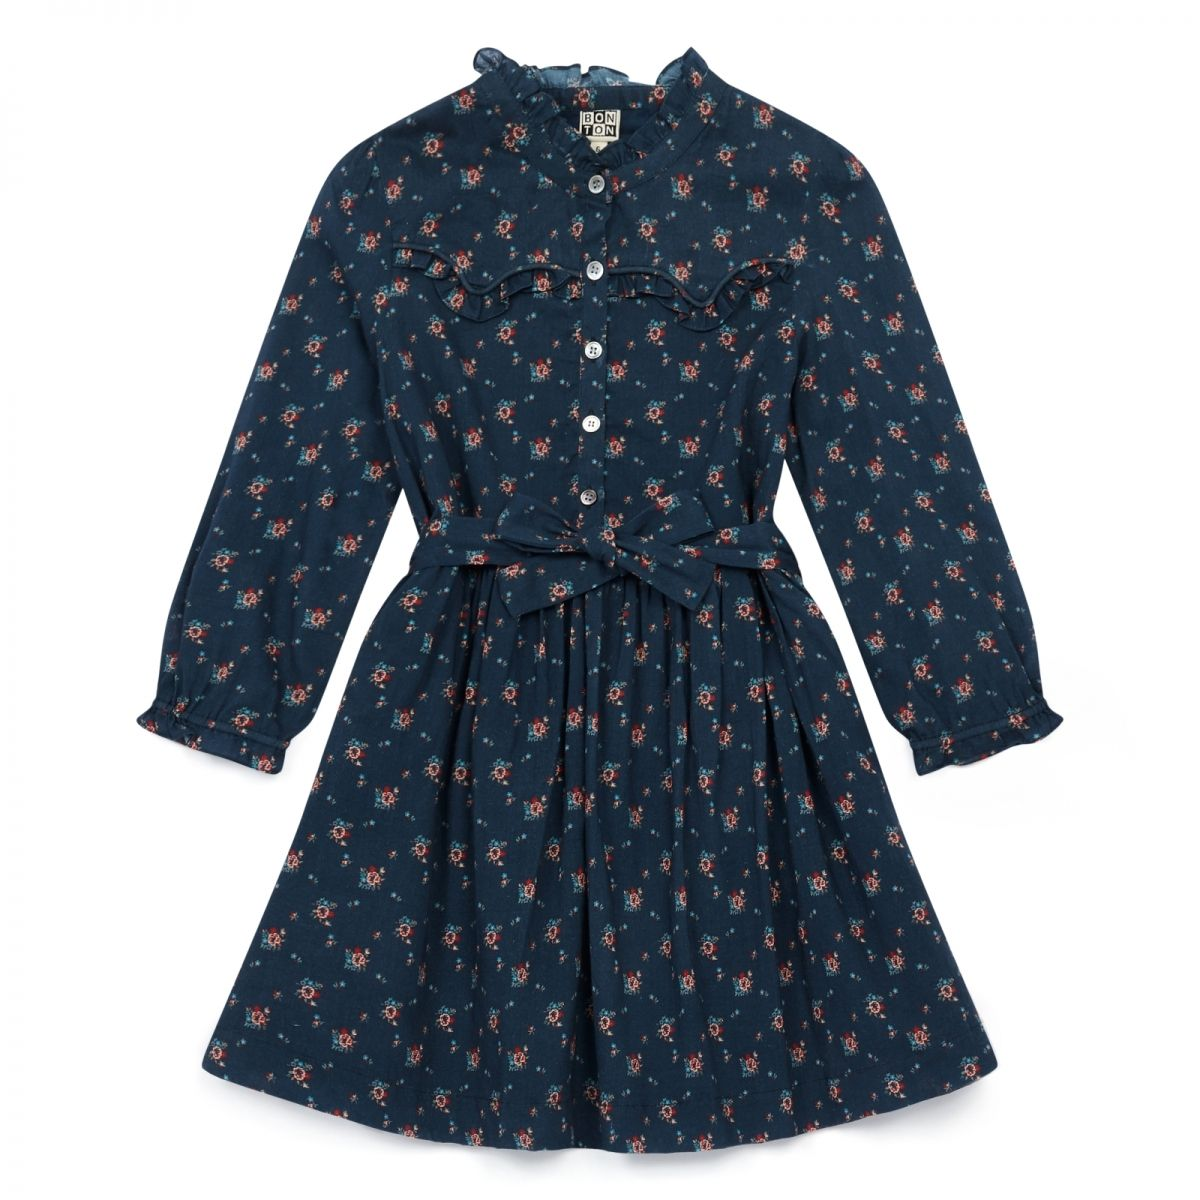 Bonton Dress Santacru navy